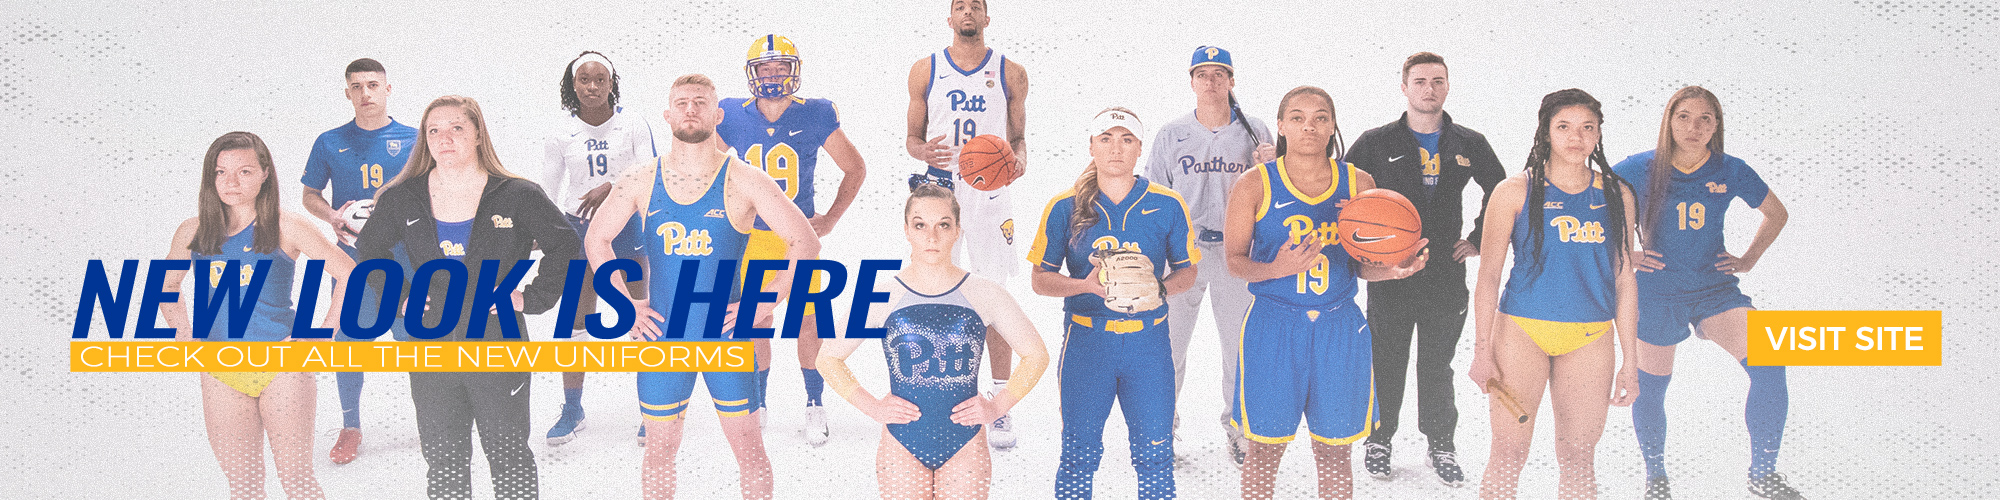 new arrival dd2bc 70c80 Pitt Panthers #H2P - Official Athletics Website